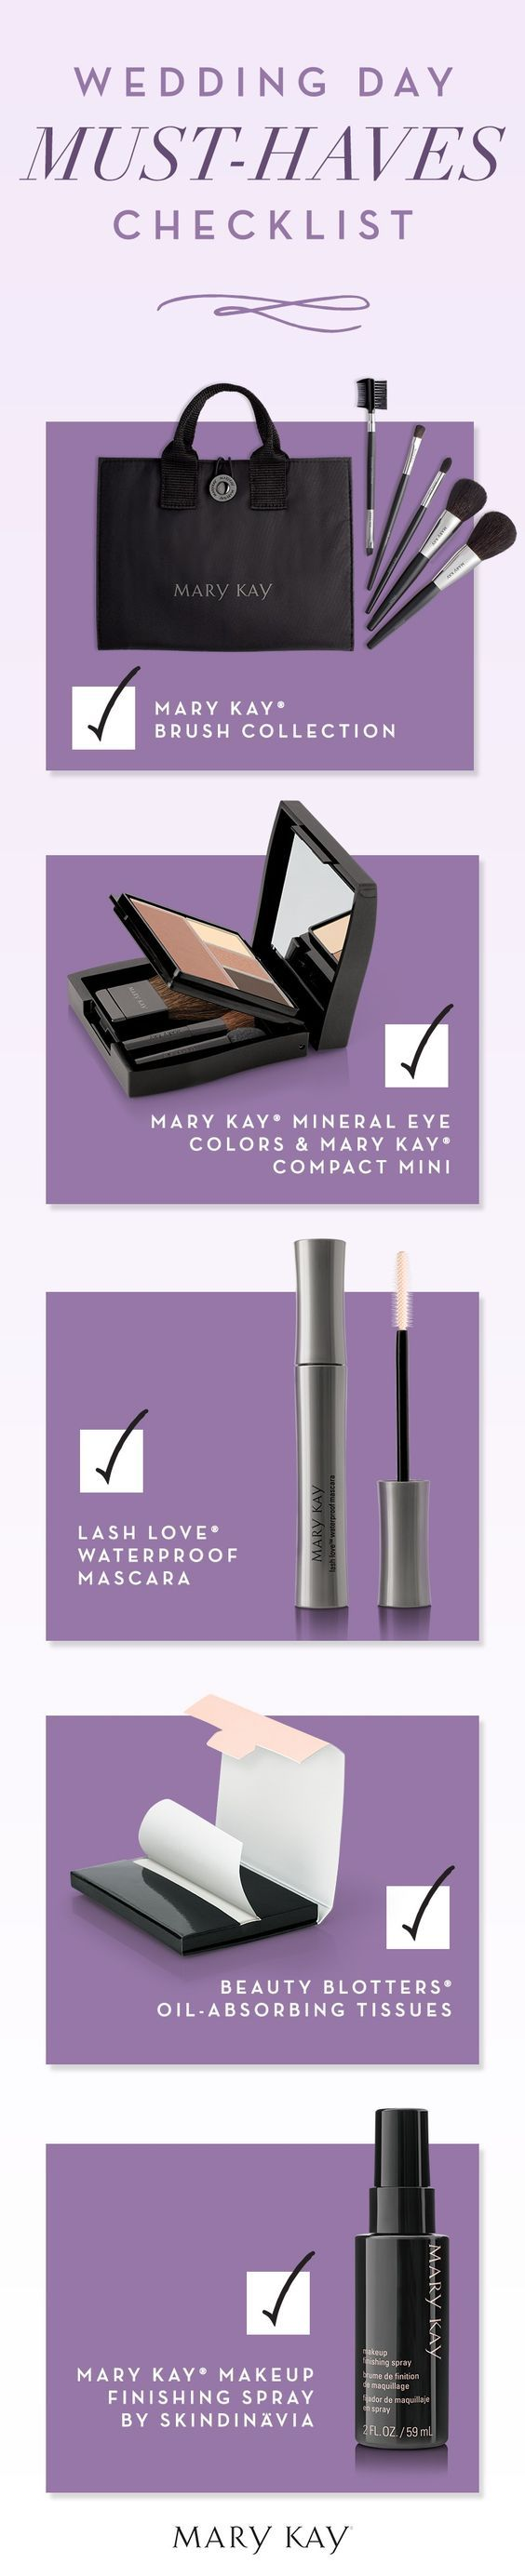 A bride has plenty to think about on her wedding day. Whether you're a bridesmaid or the gal tying the knot, don't forget to have these beauty essentials on hand for the big day! | Mary Kay